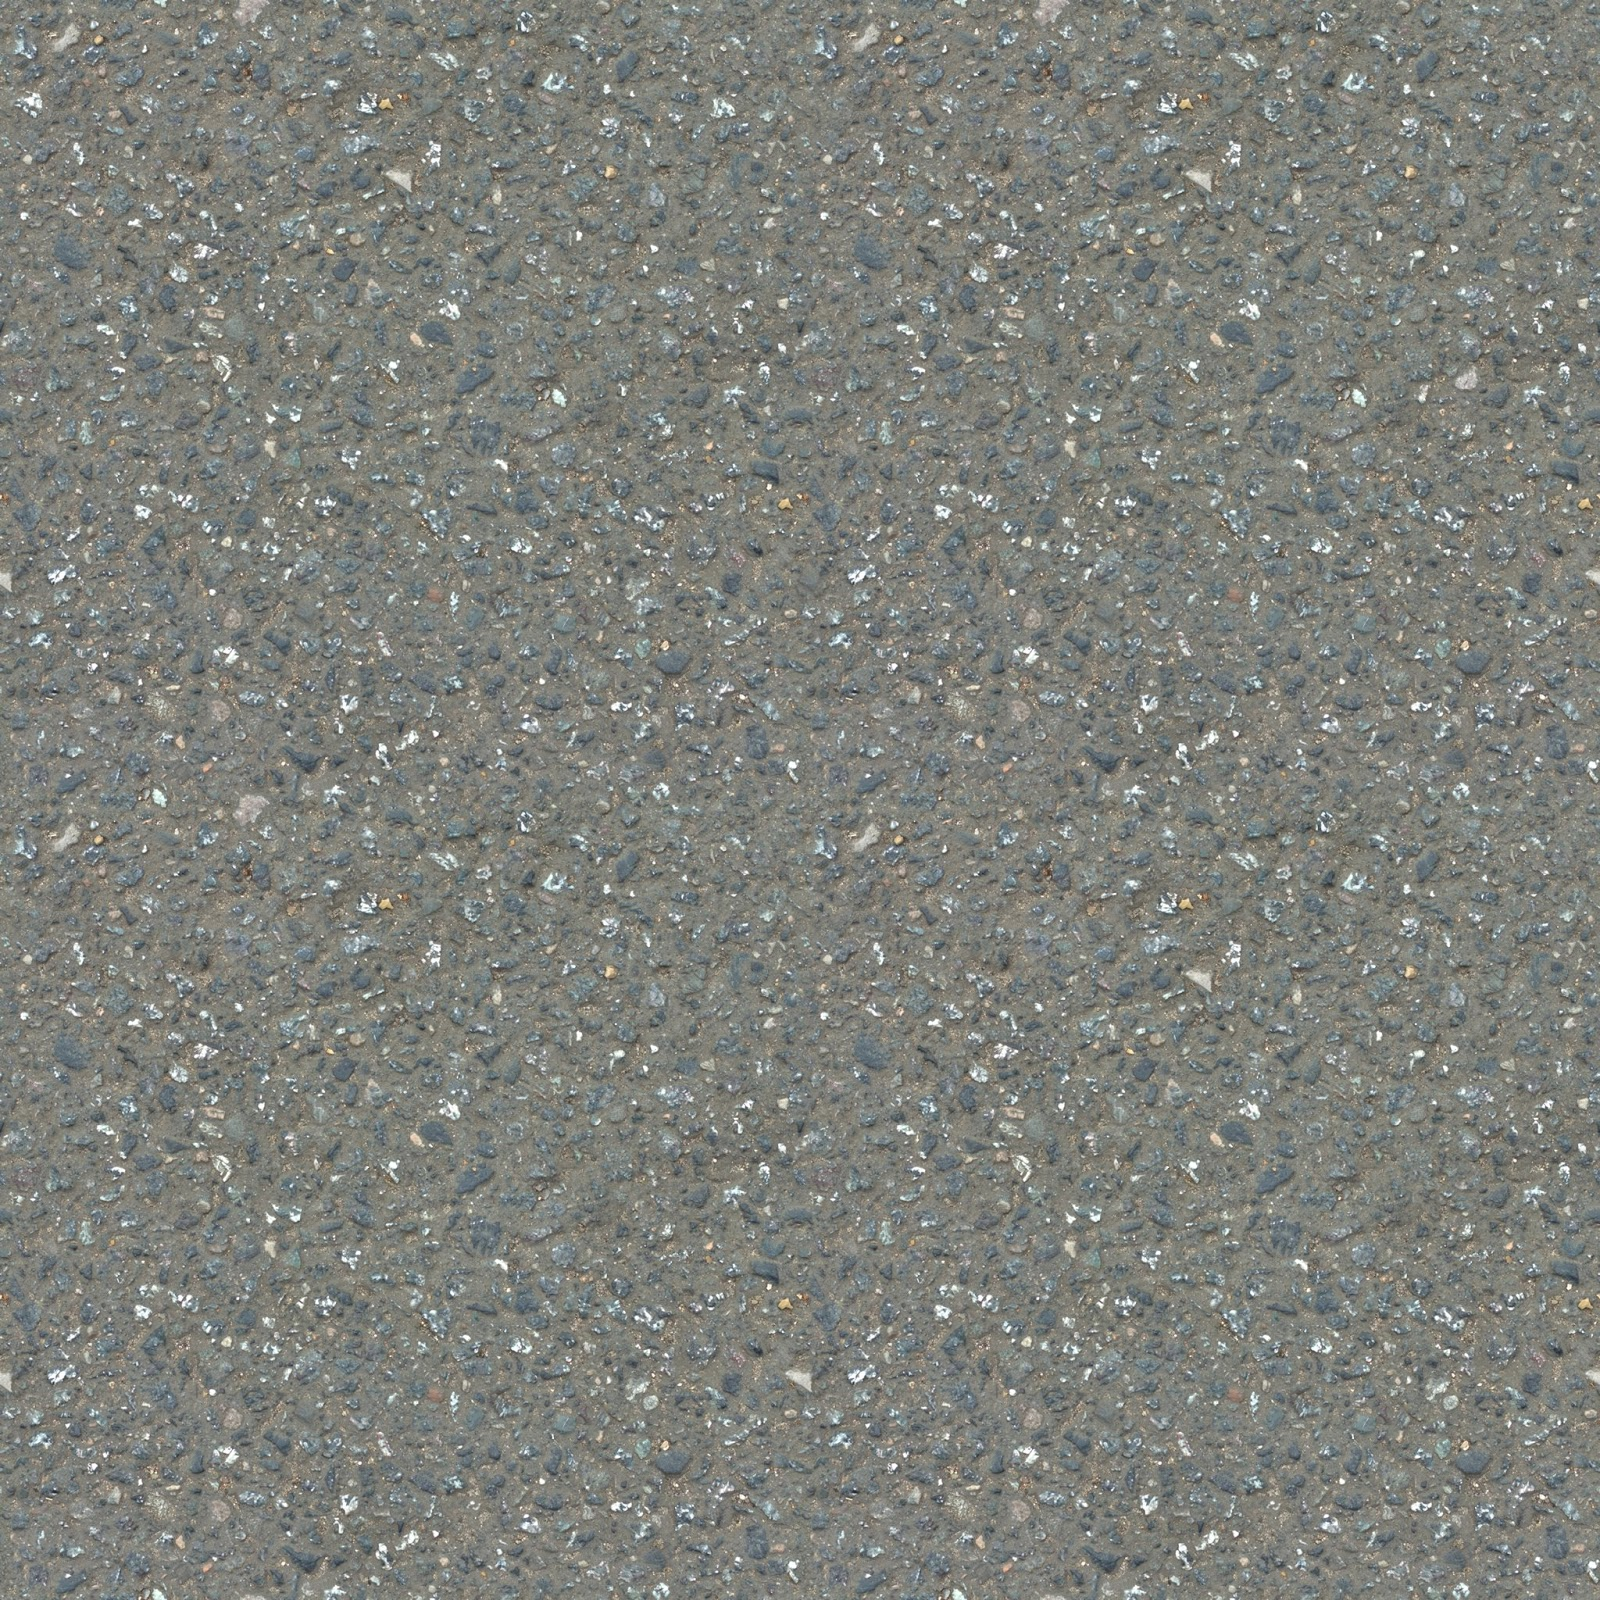 (CONCRETE 17) seamless floor granite stones texture